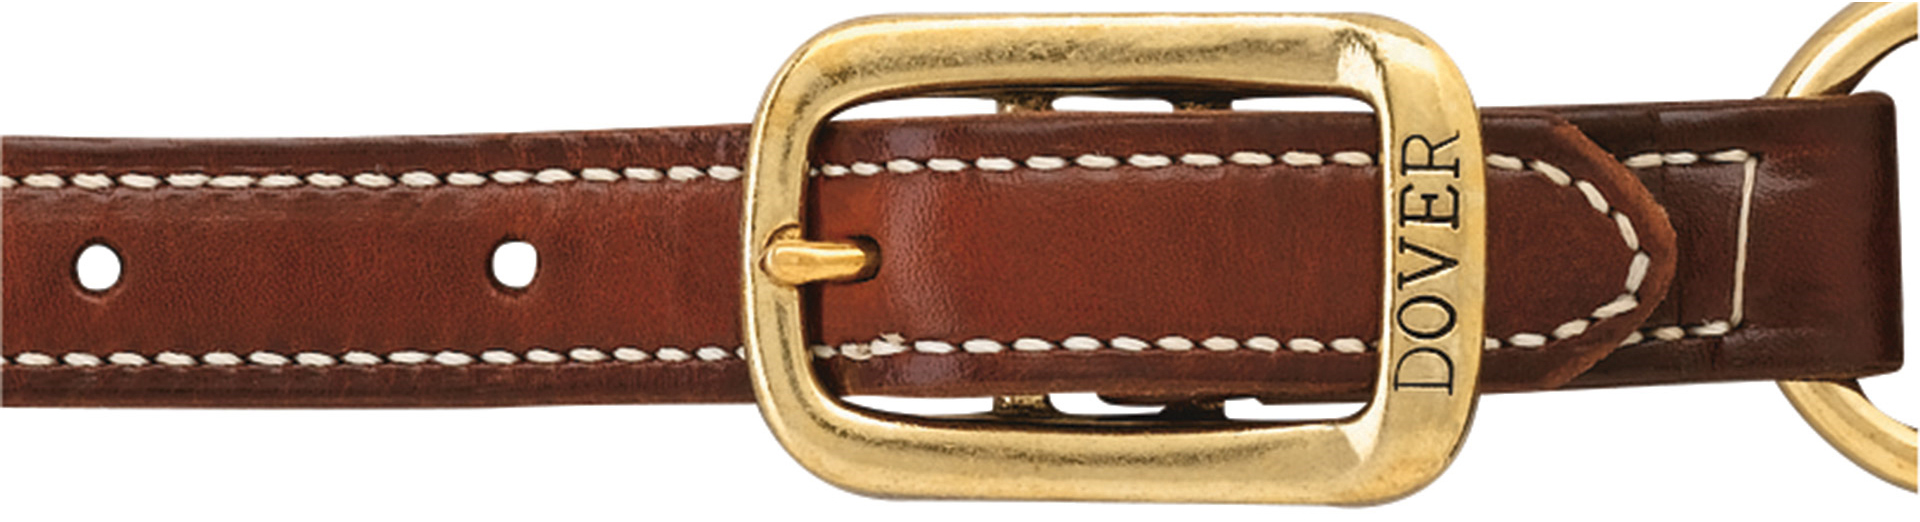 As You For Brown Leather Tack Ll See A Variety Of Color Names The Selections From Various Manufacturers Here Is Brief Description